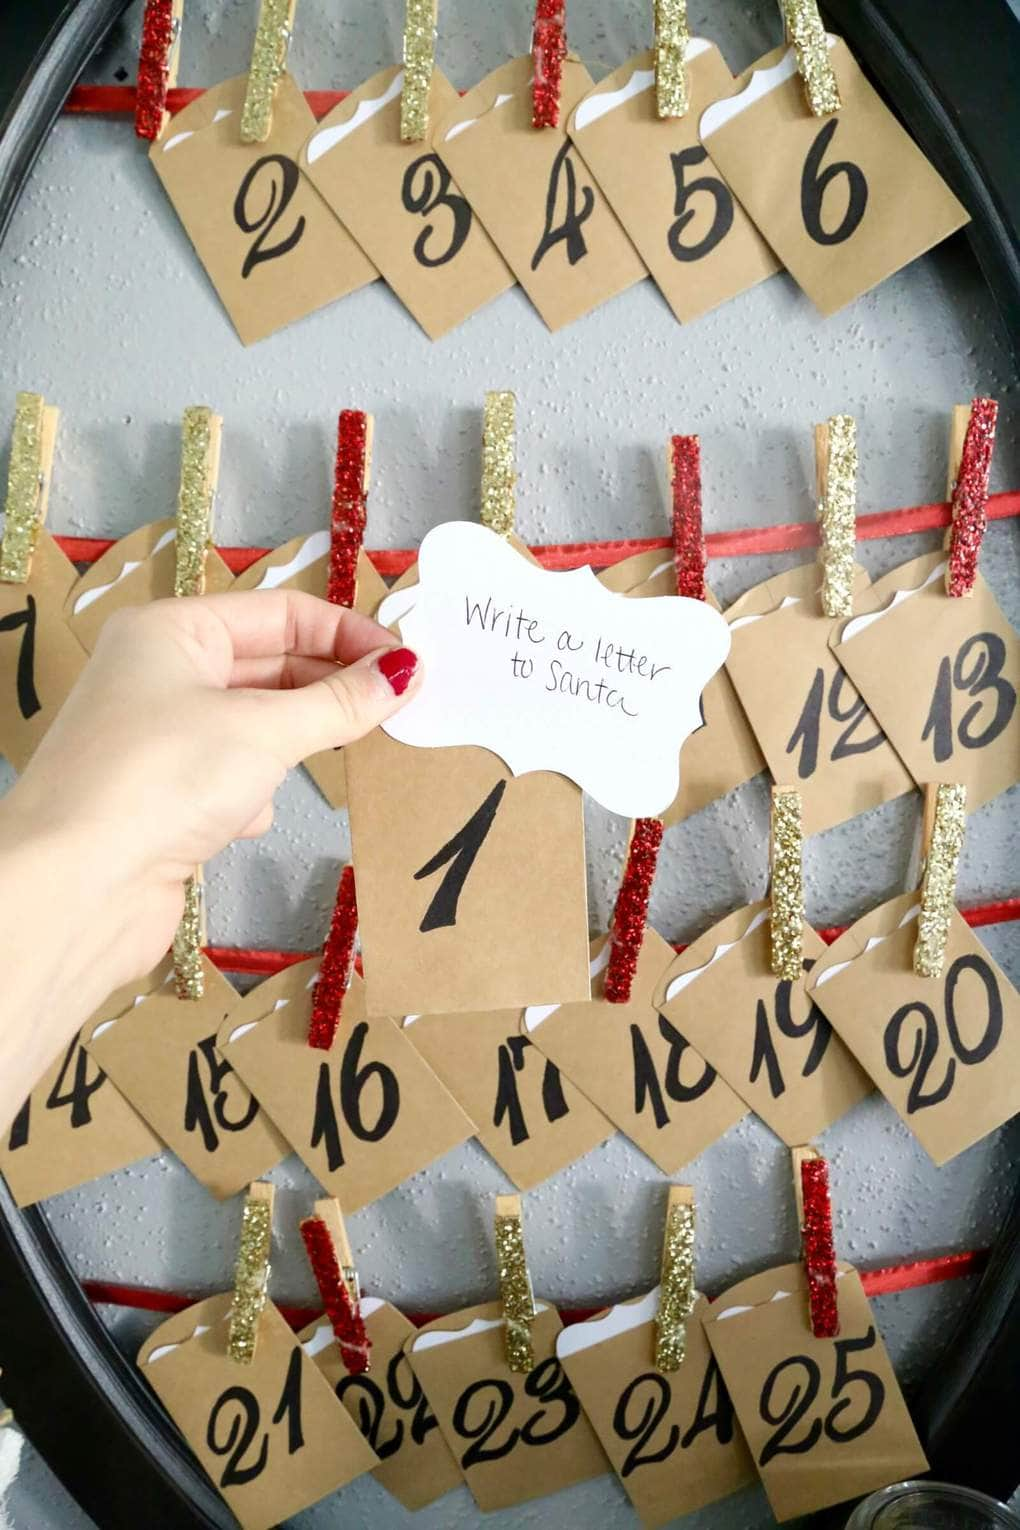 This DIY activity advent calendar is a great Christmas tradition. Tons of great ideas for activities to do with your family this Christmas, and it's so simple to make yourself!